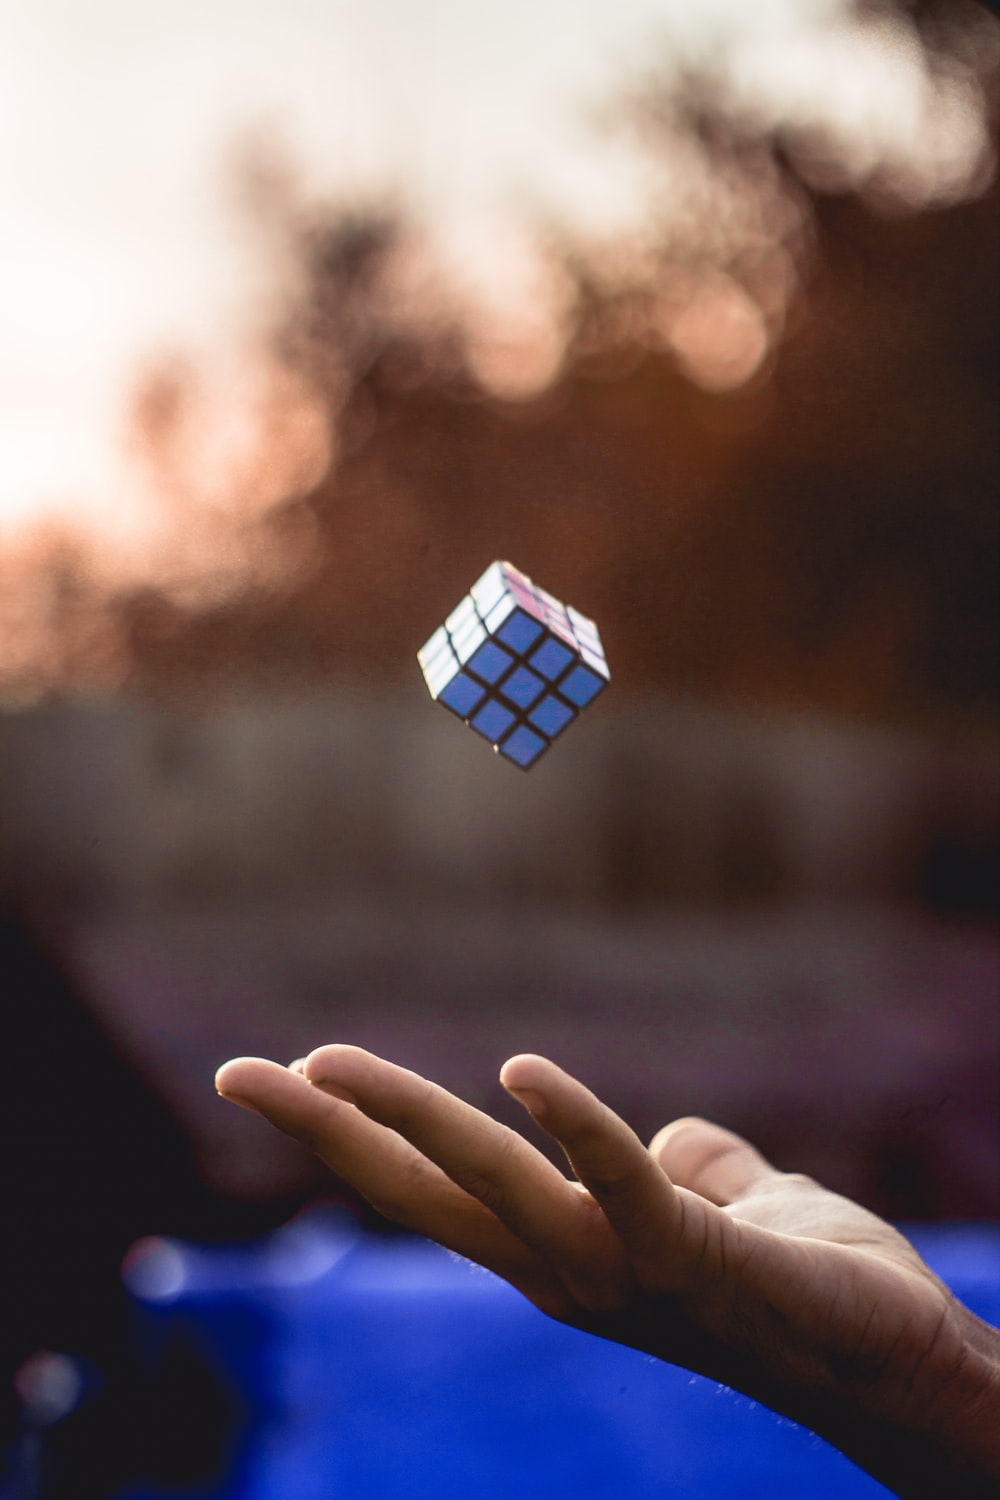 person holding blue and white cube